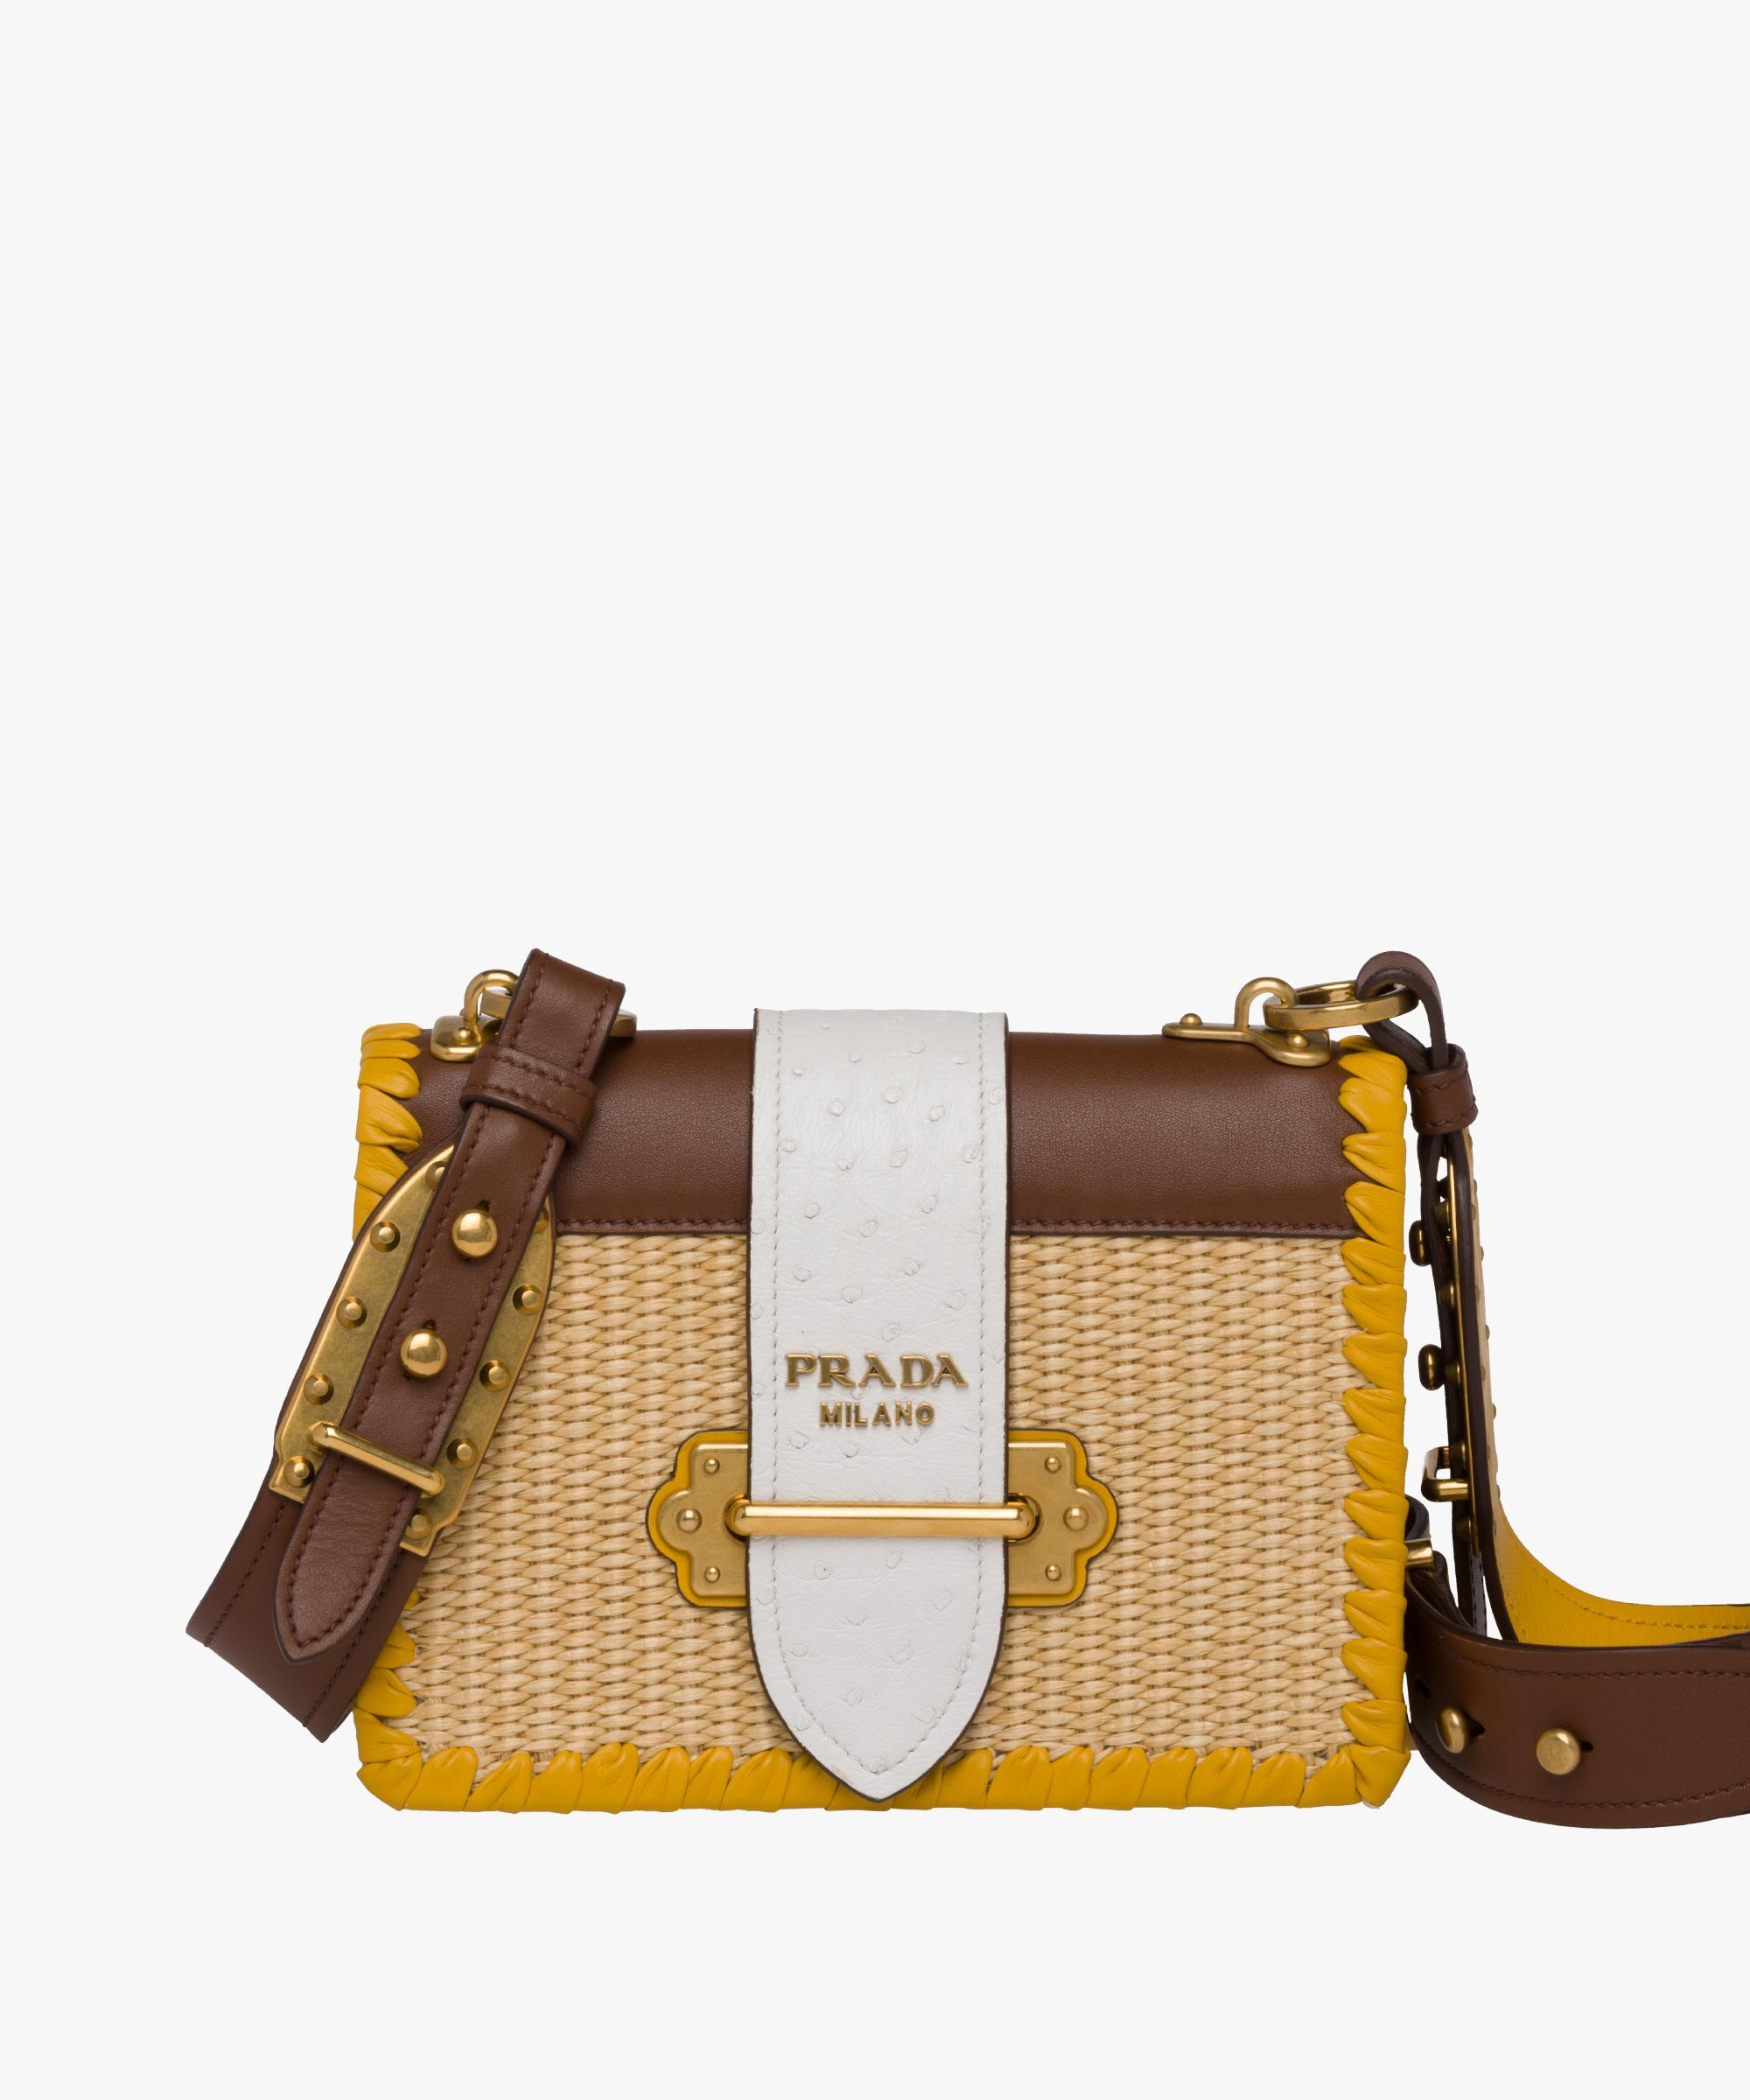 92f06cfbe732 Prada Cahier Straw And Leather Bag in Brown - Lyst